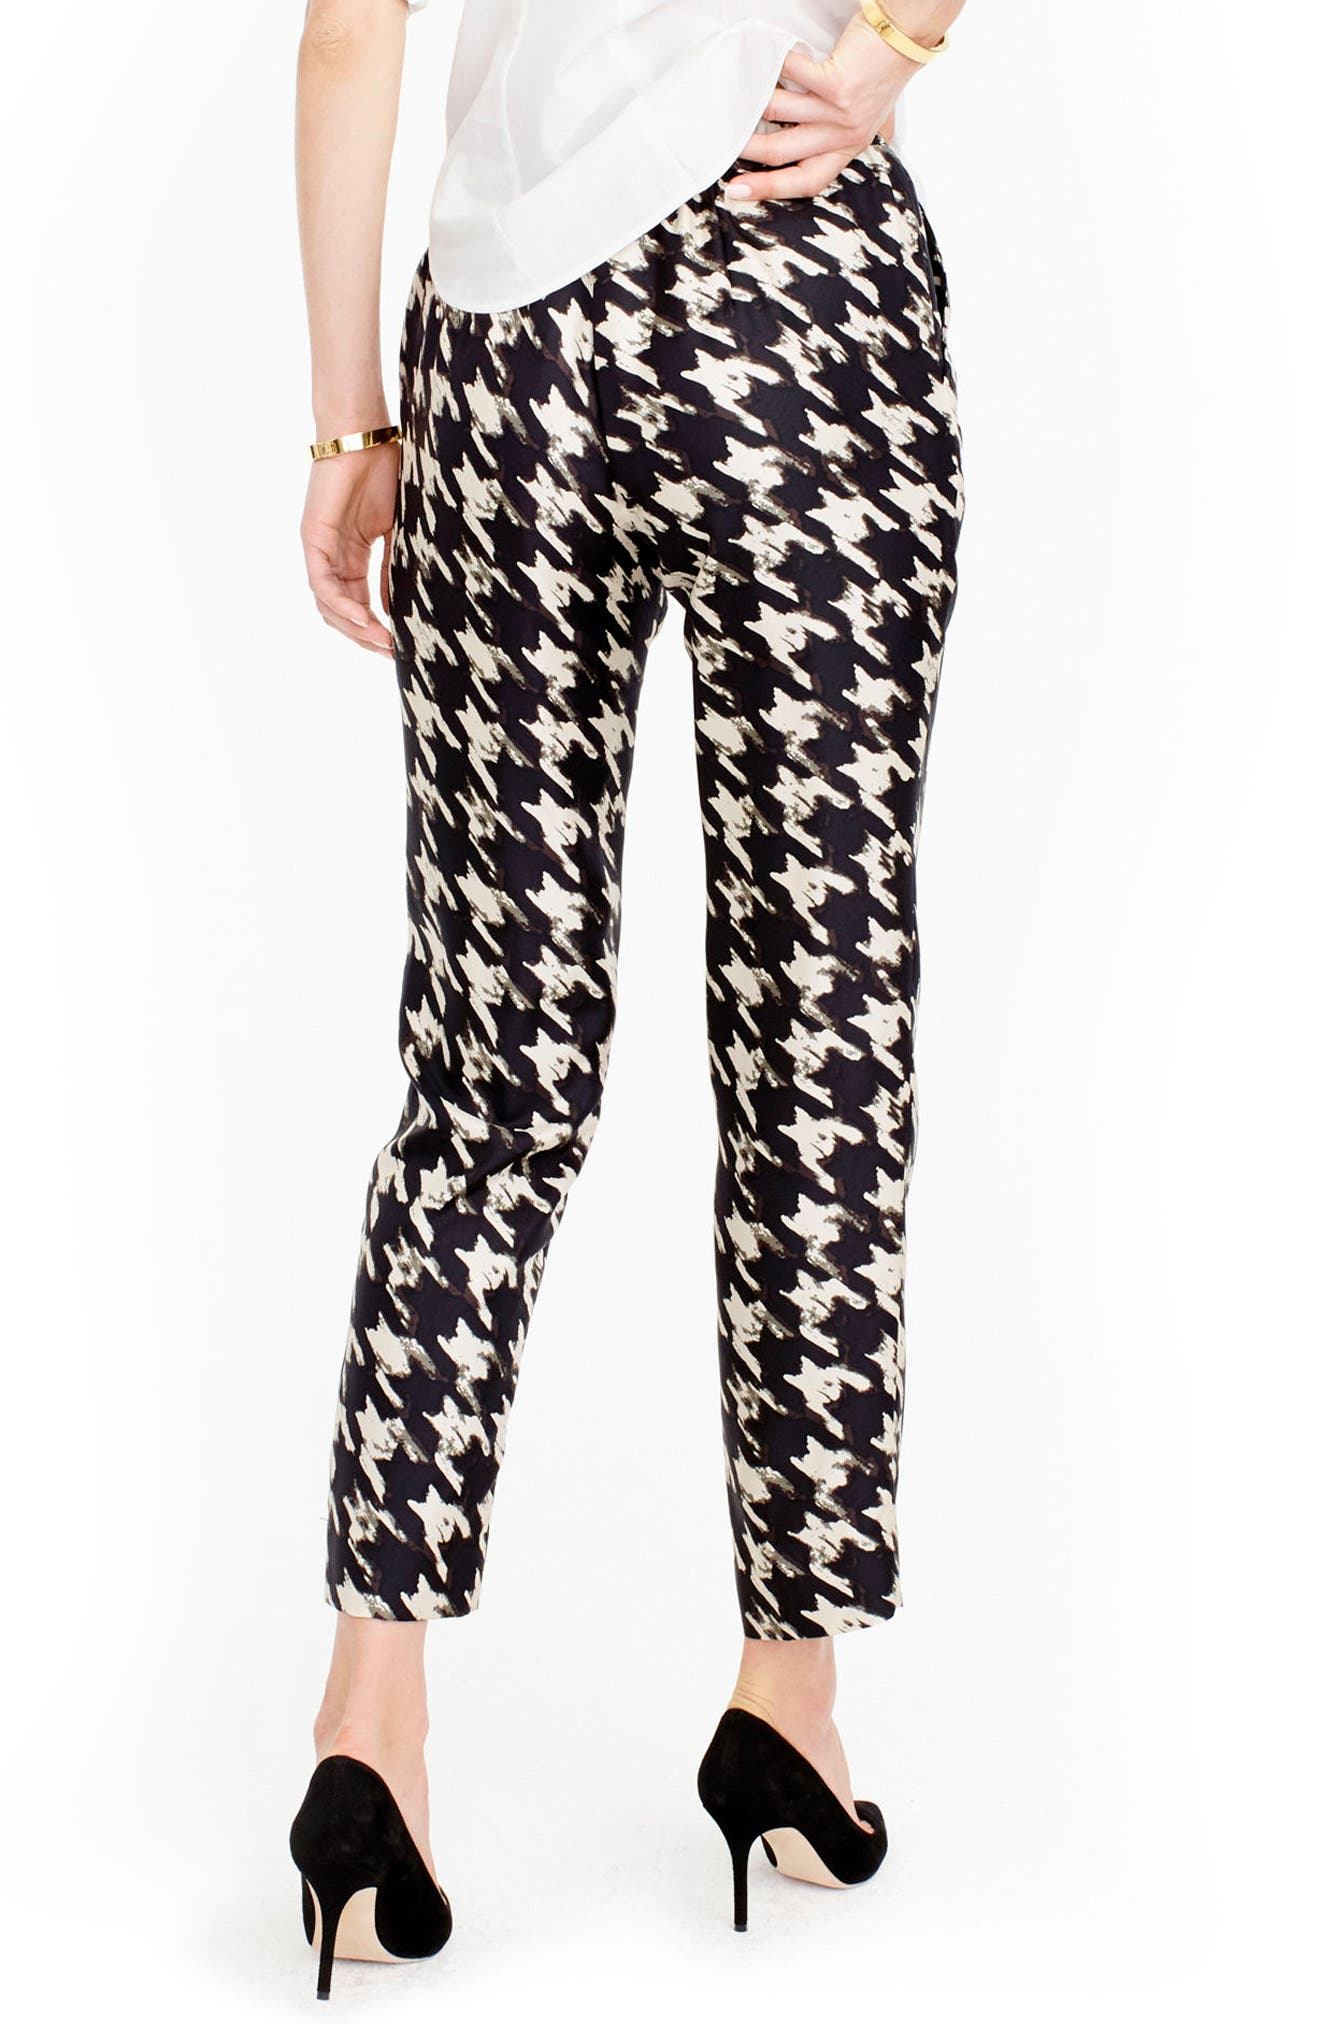 J.CREW, Forrester Wolfstooth Silk Pants, Alternate thumbnail 2, color, 901